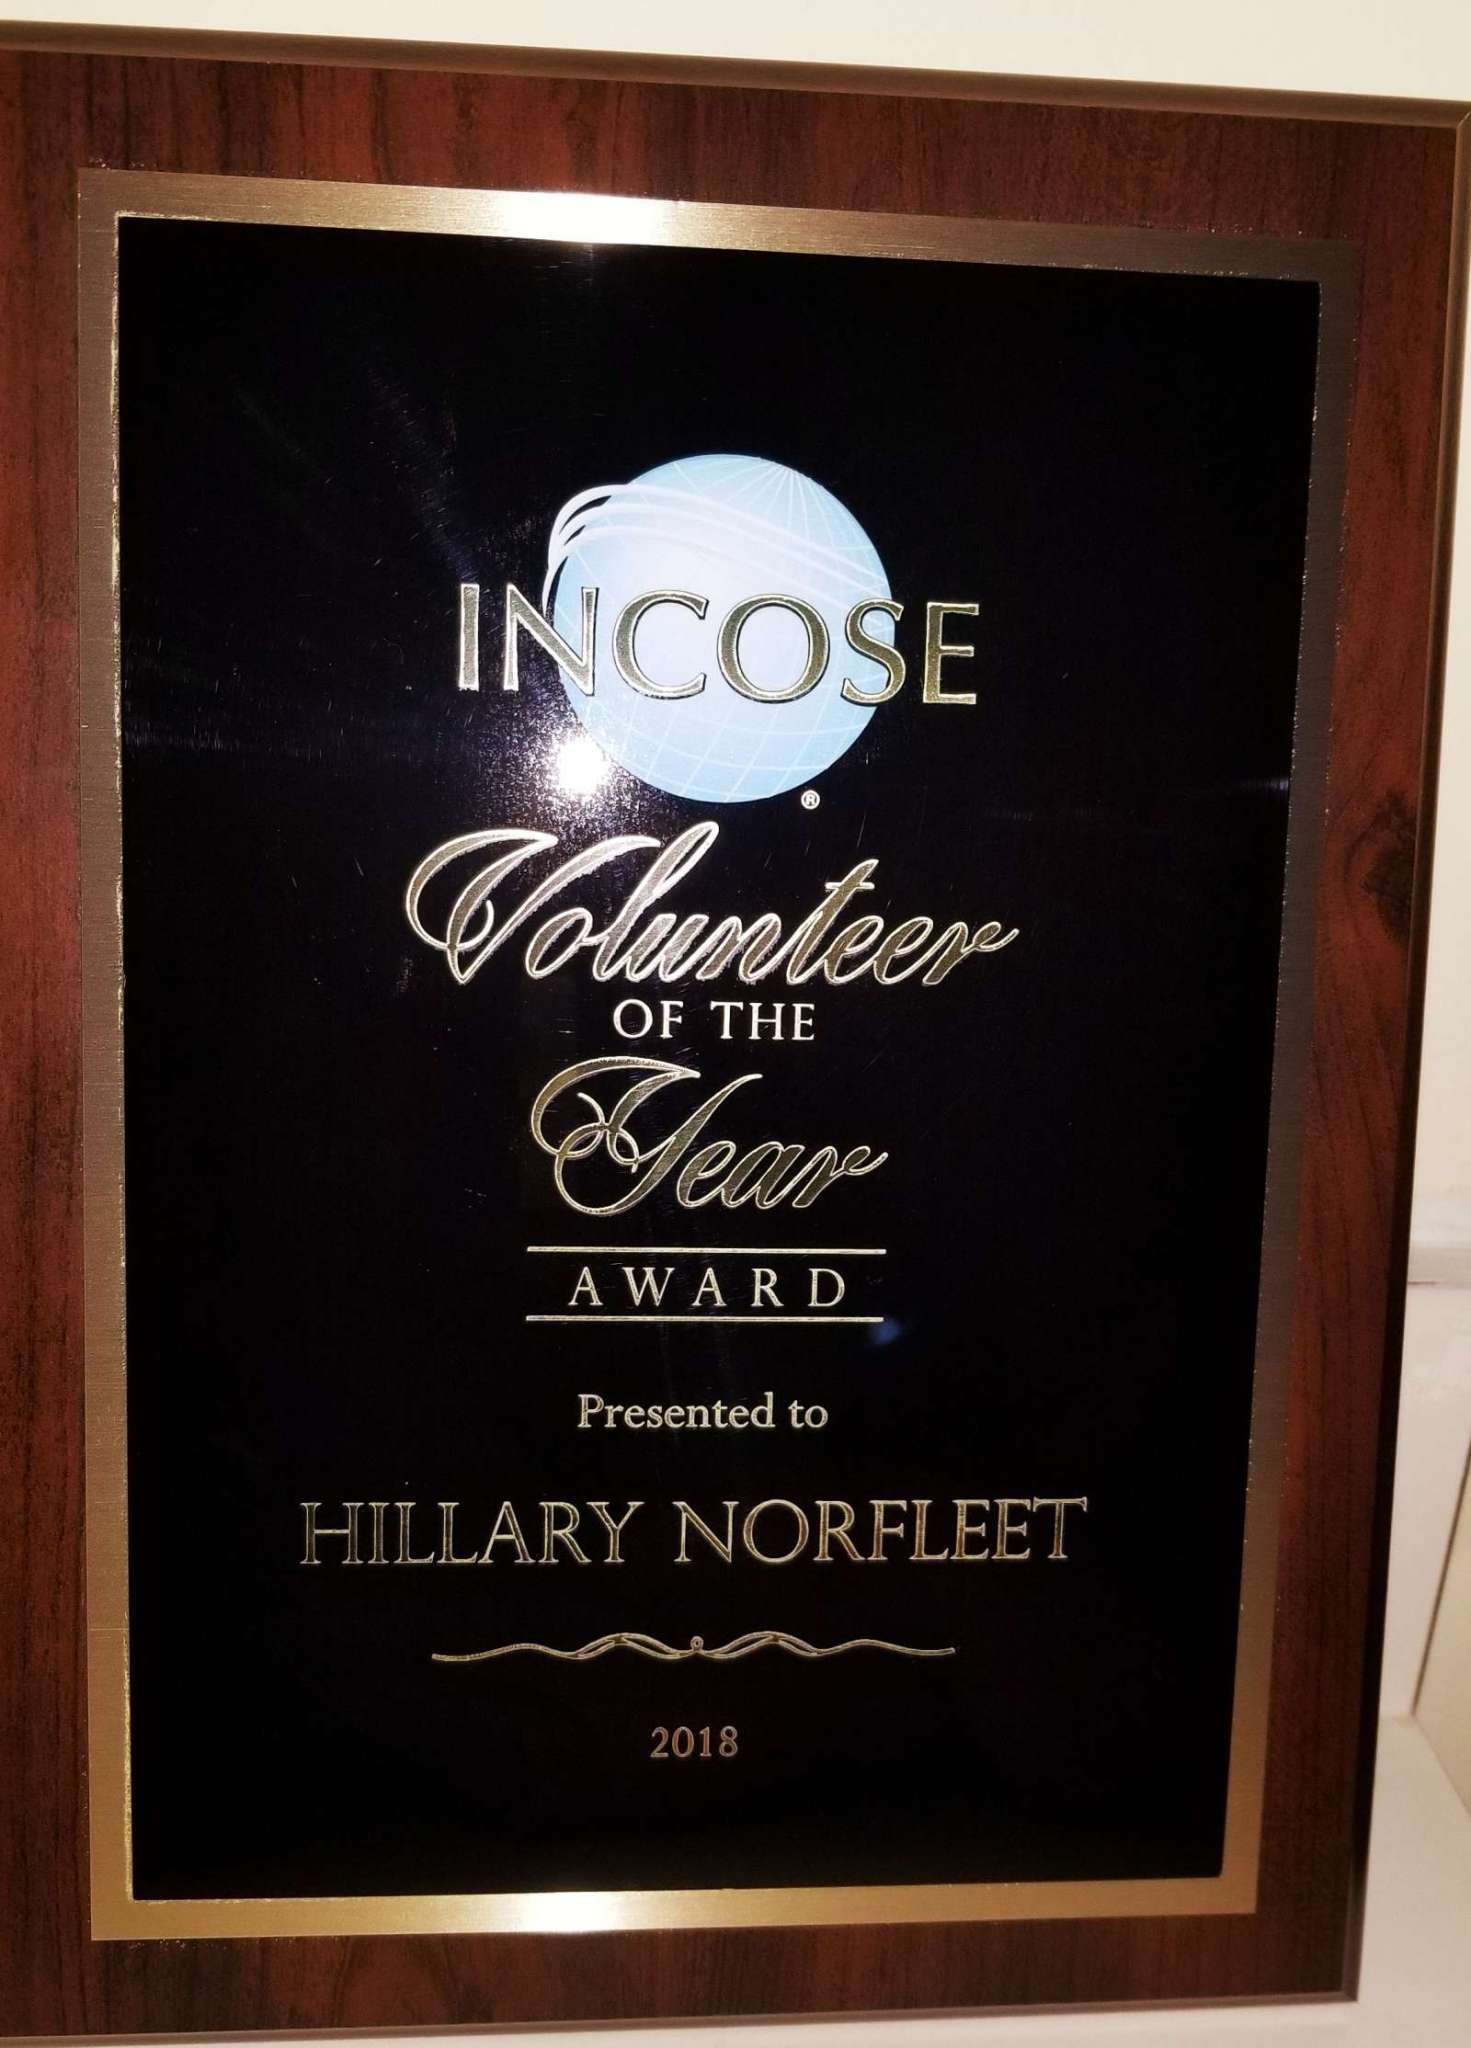 INCOSE Volunteer of the Year 2018